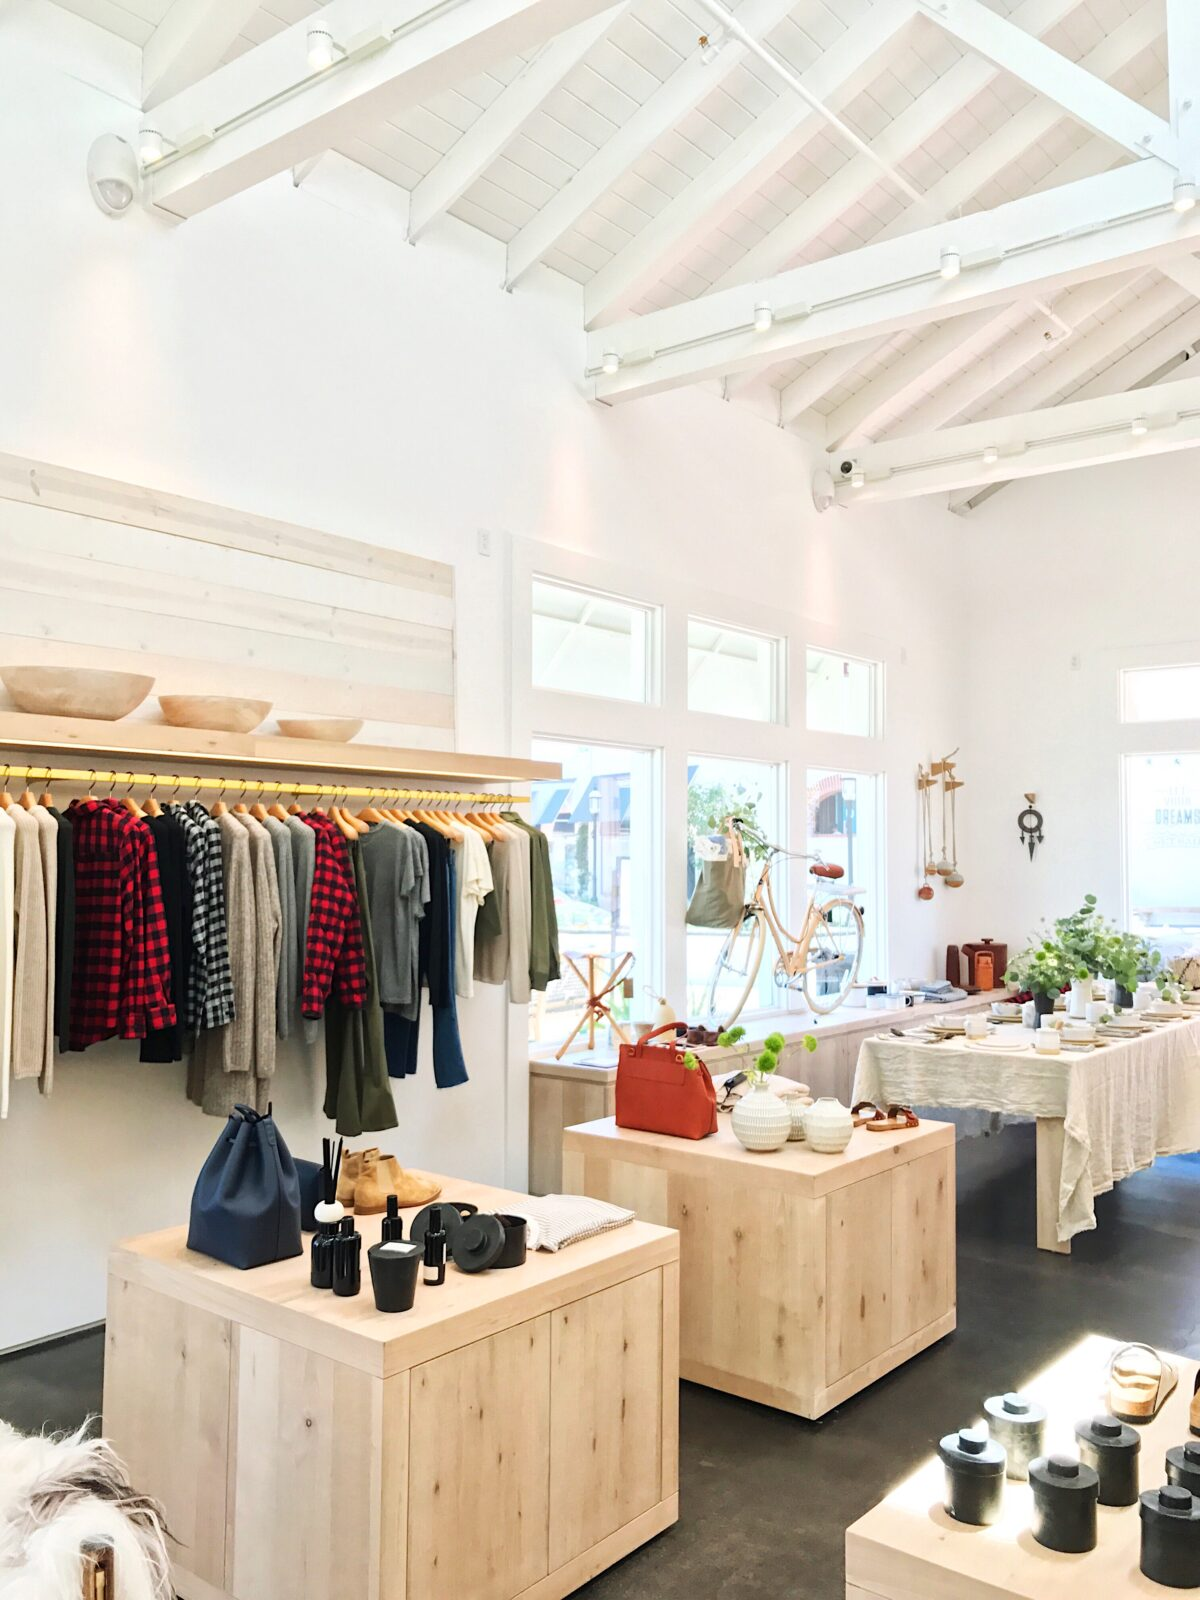 thanks to the vaulted ceilings bay windows and the crisp white painted interior the store is all shades of dreamy with its abundance of natural light the - Jenni Kayne Store